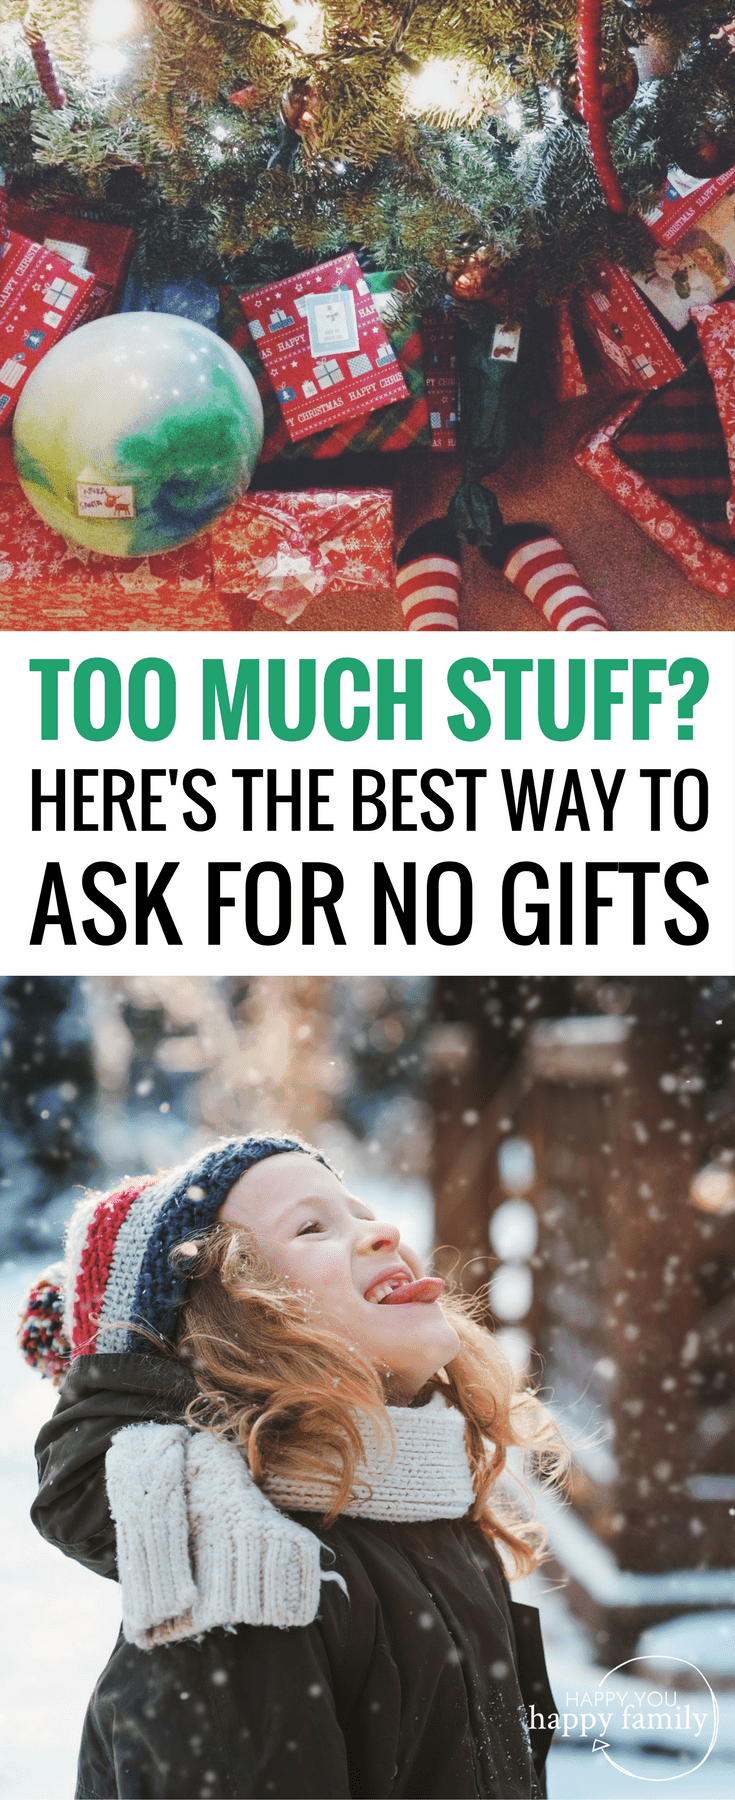 If your kids already have too much stuff, here's the best way to politely request no Christmas gifts this year...without offending anyone! This is perfect for families who are striving for a minimalist Christmas with a focus on experience gifts and non-toy gifts. Great tips for talking to grandparents and extended family about skipping gifts this holiday season! #christmasgifts #minimalist #simpleliving